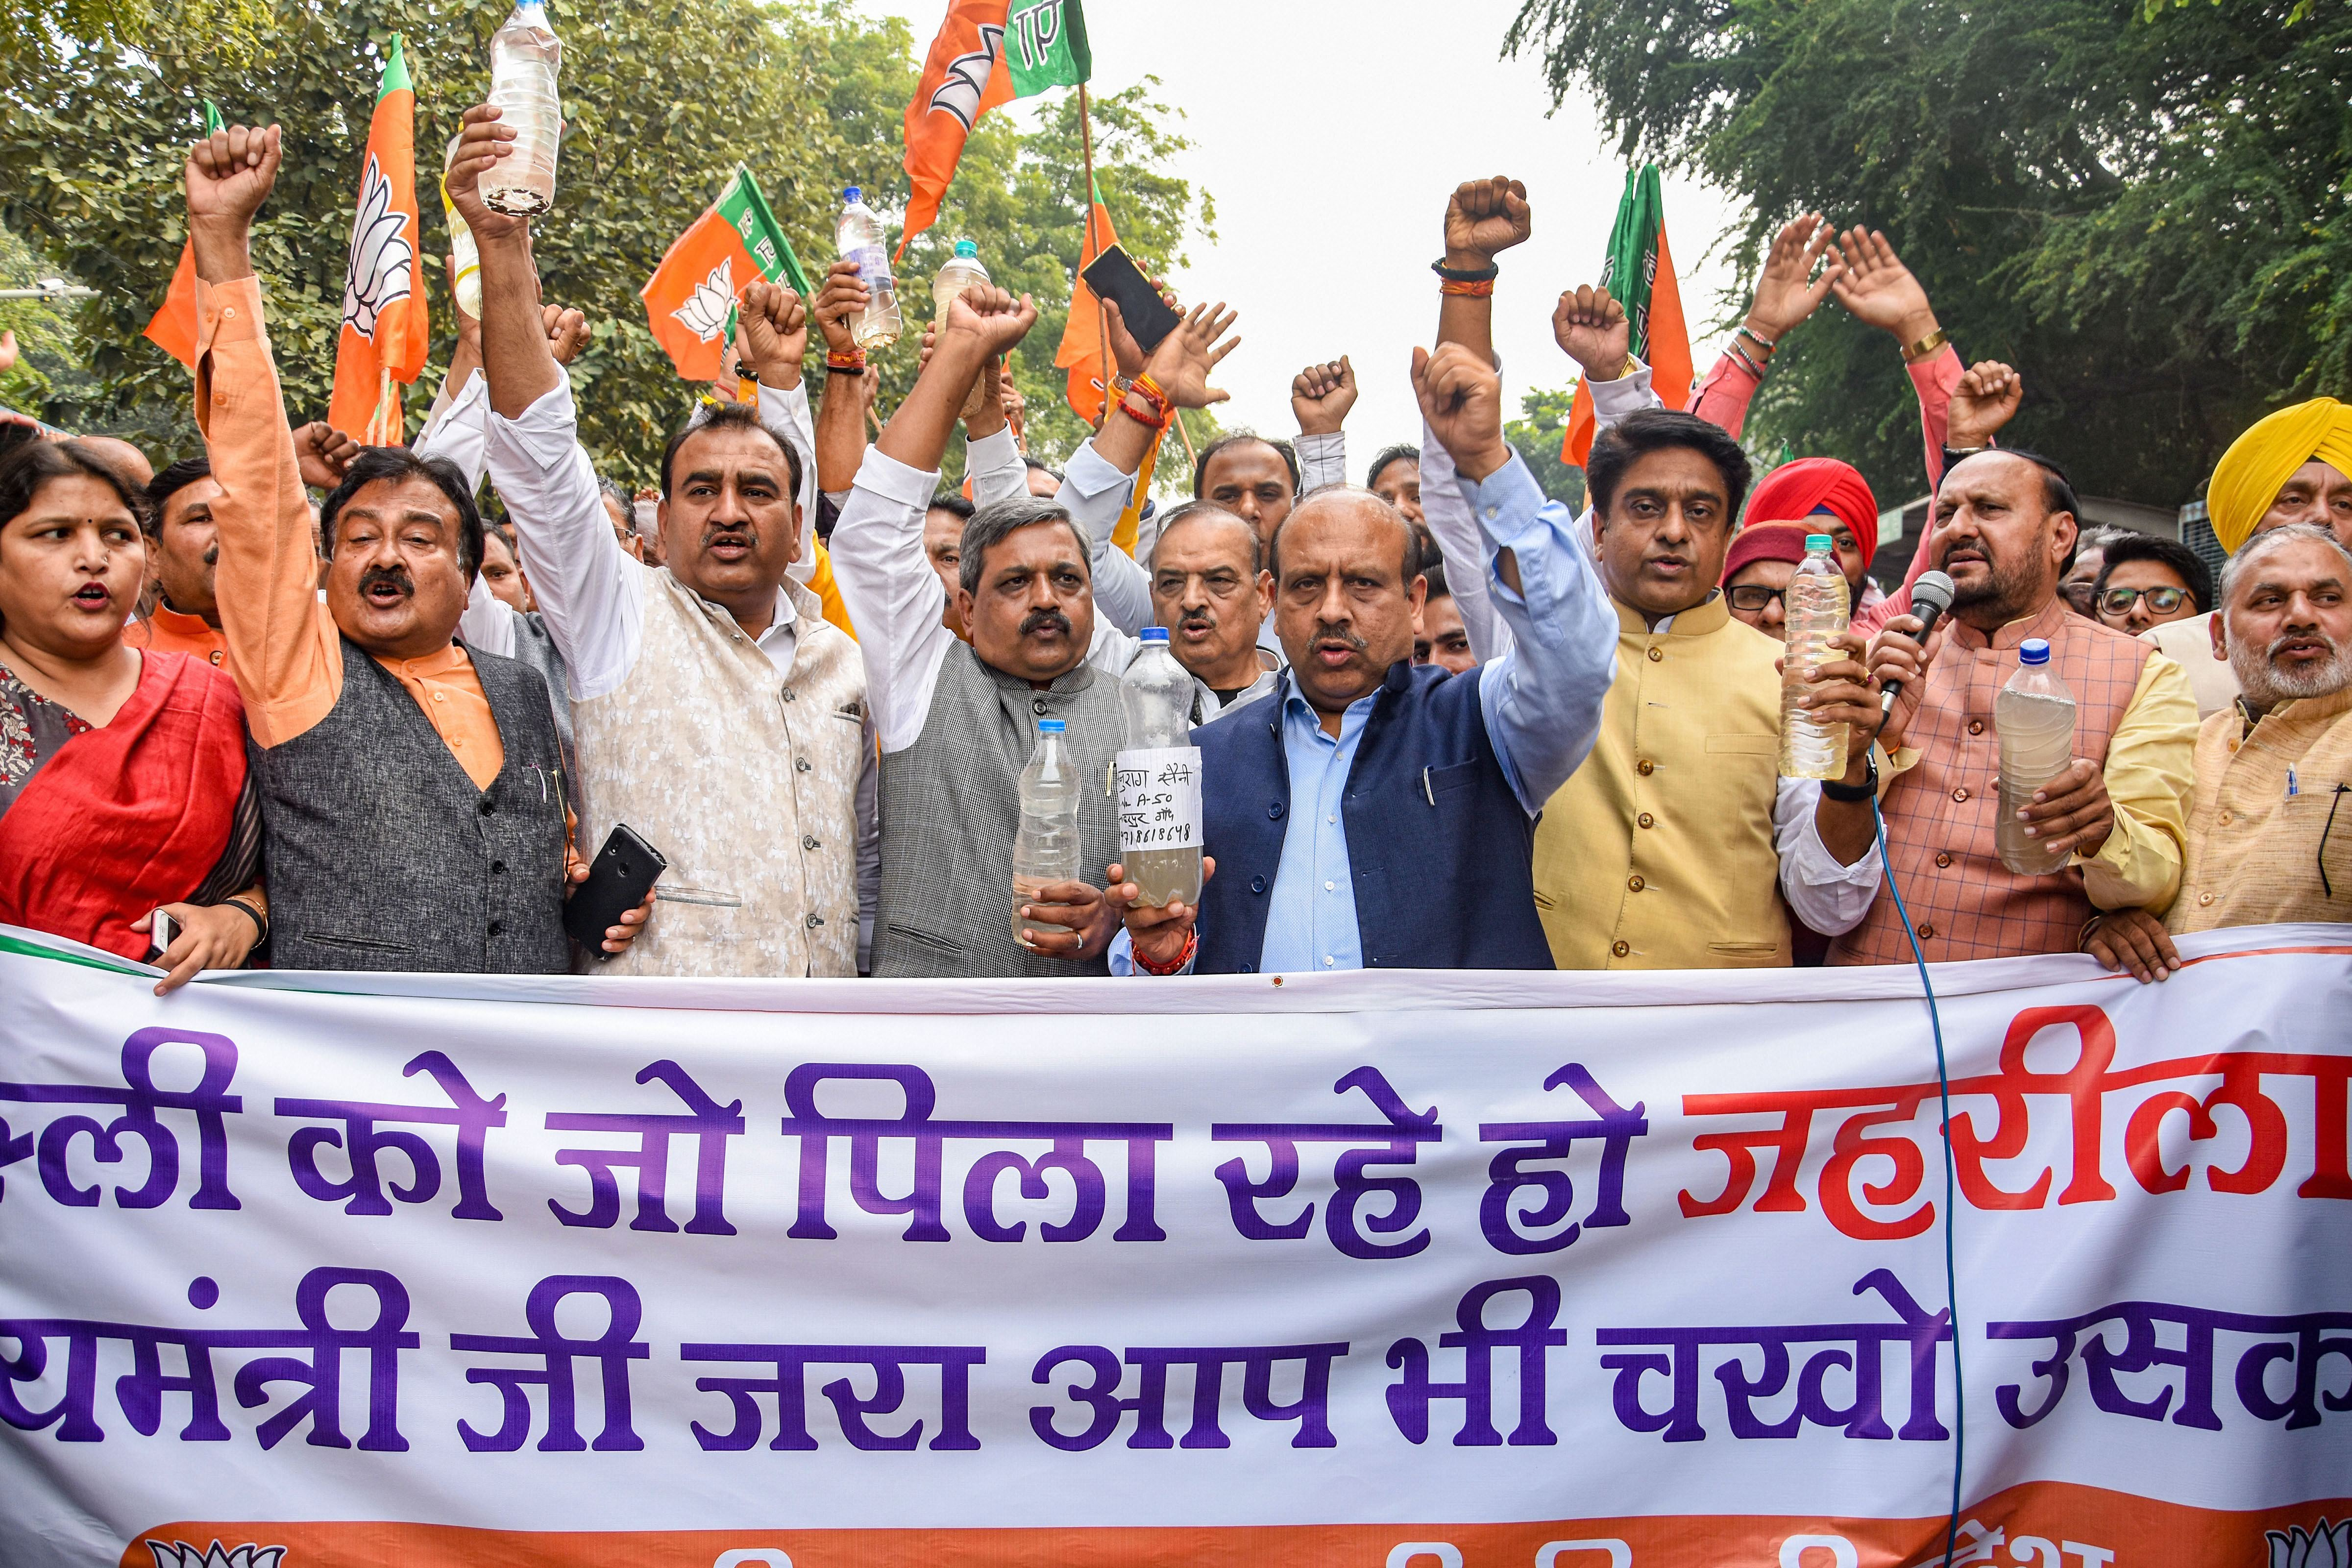 BJP Delhi leaders and supporters, led by city unit chief Manoj Tiwari (unseen), carry water samples from various parts of Delhi as they stage a protest near chief minister Arvind Kejriwal's residence, in New Delhi, Thursday, November 21, 2019.